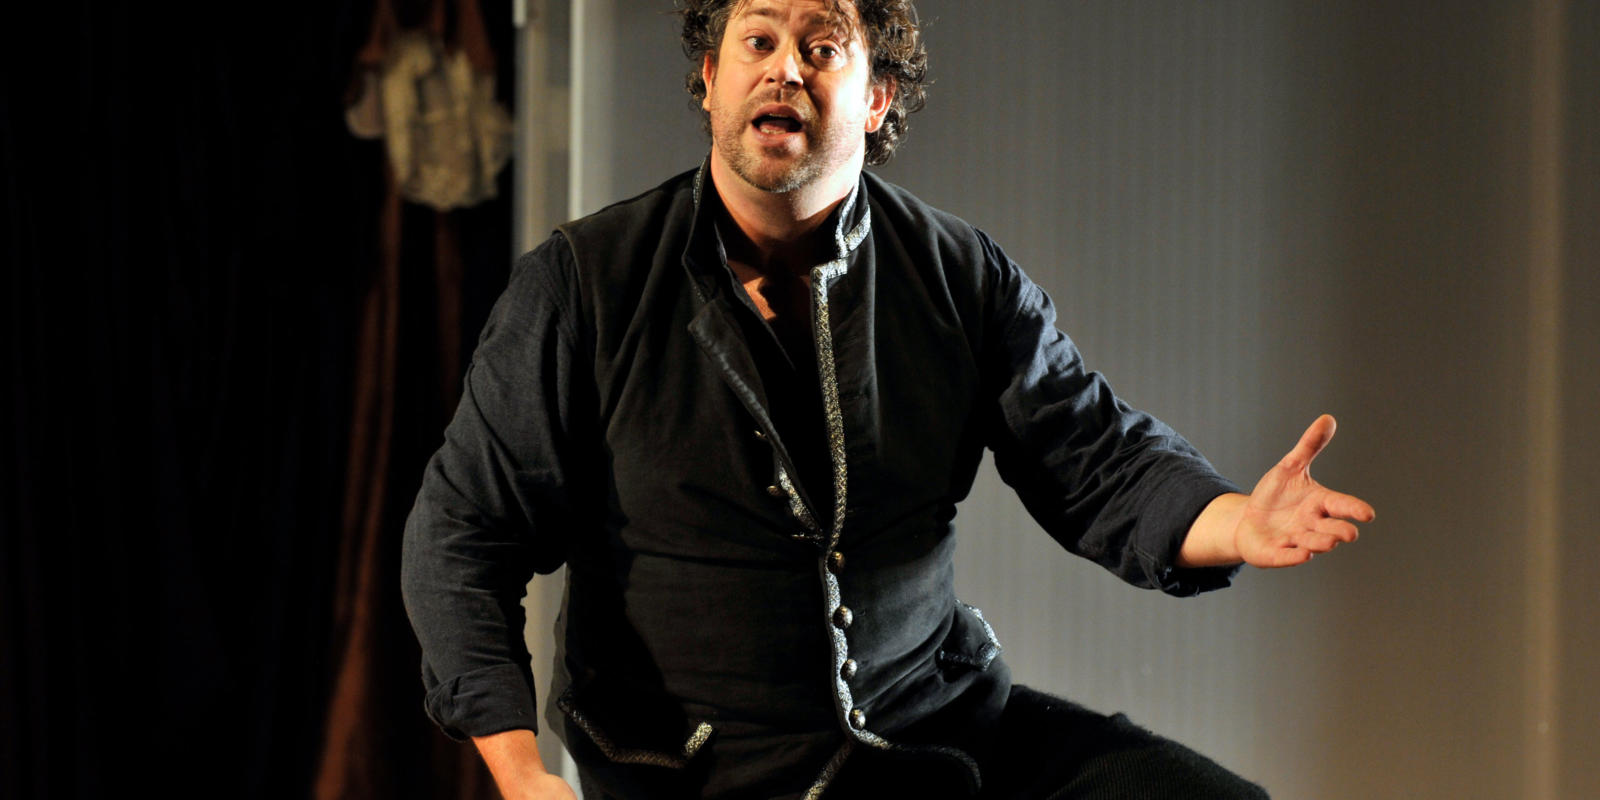 An image of David Stout in Fiona Shaw's 2014 production of The Marriage of Figaro